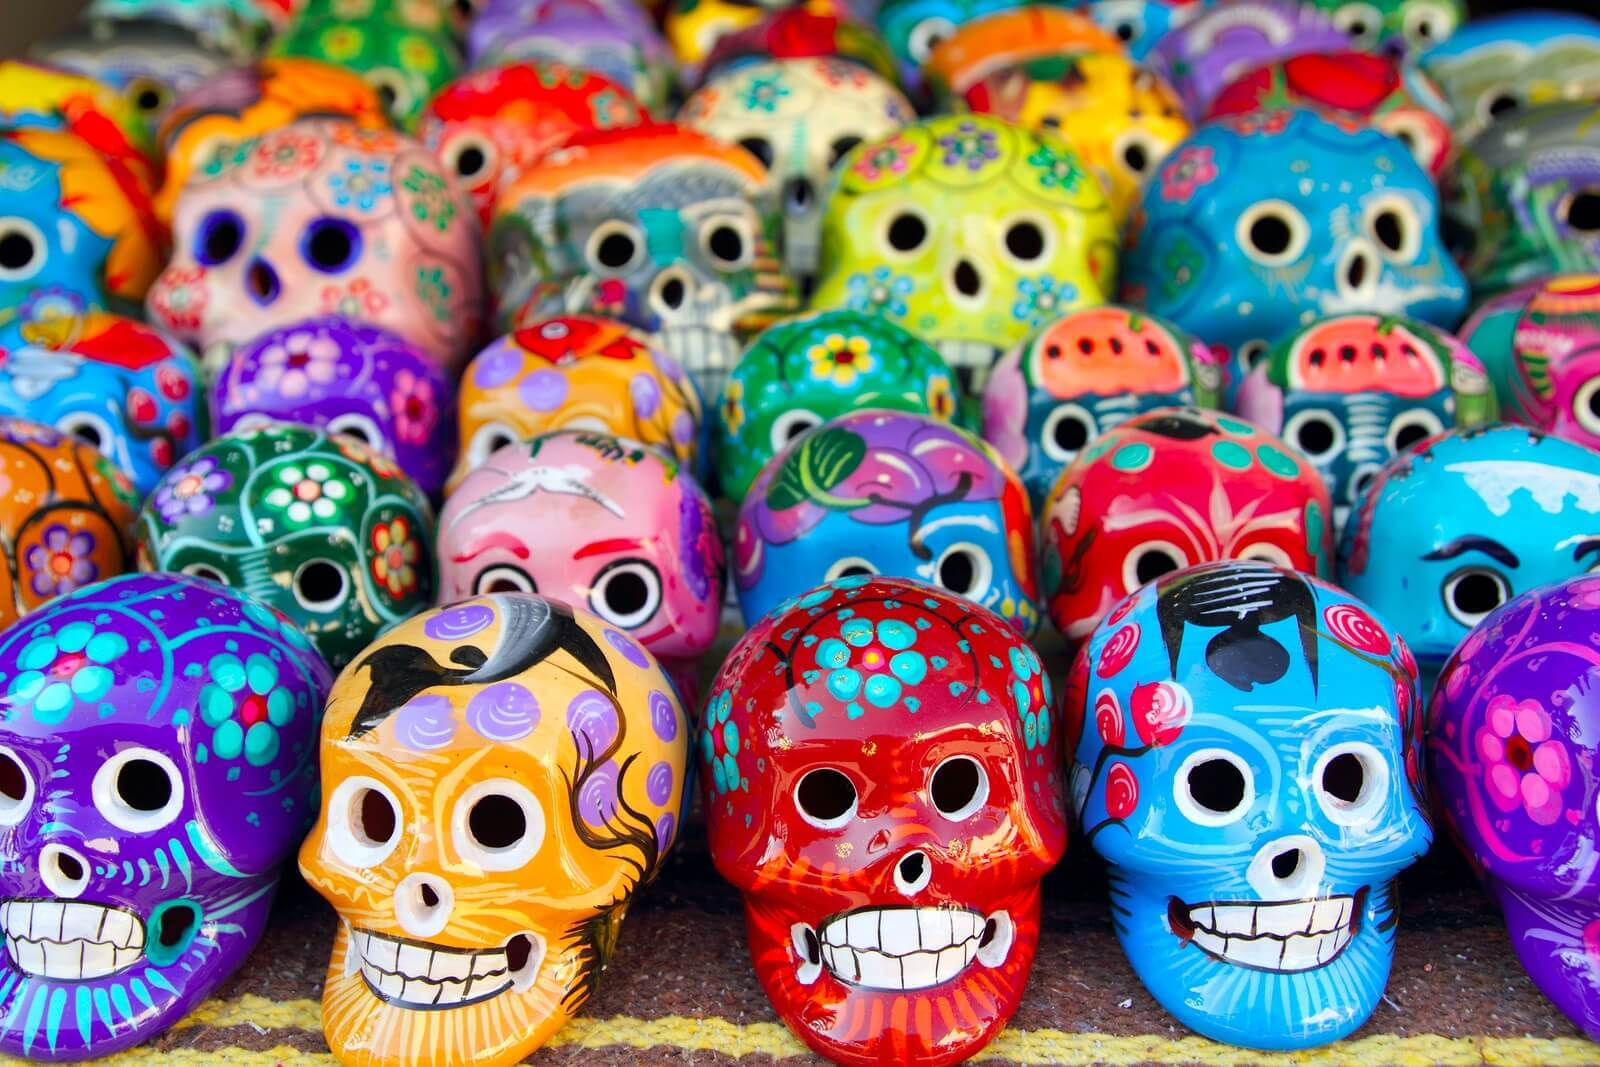 Day of the Dead  Resources  Surfnetkids